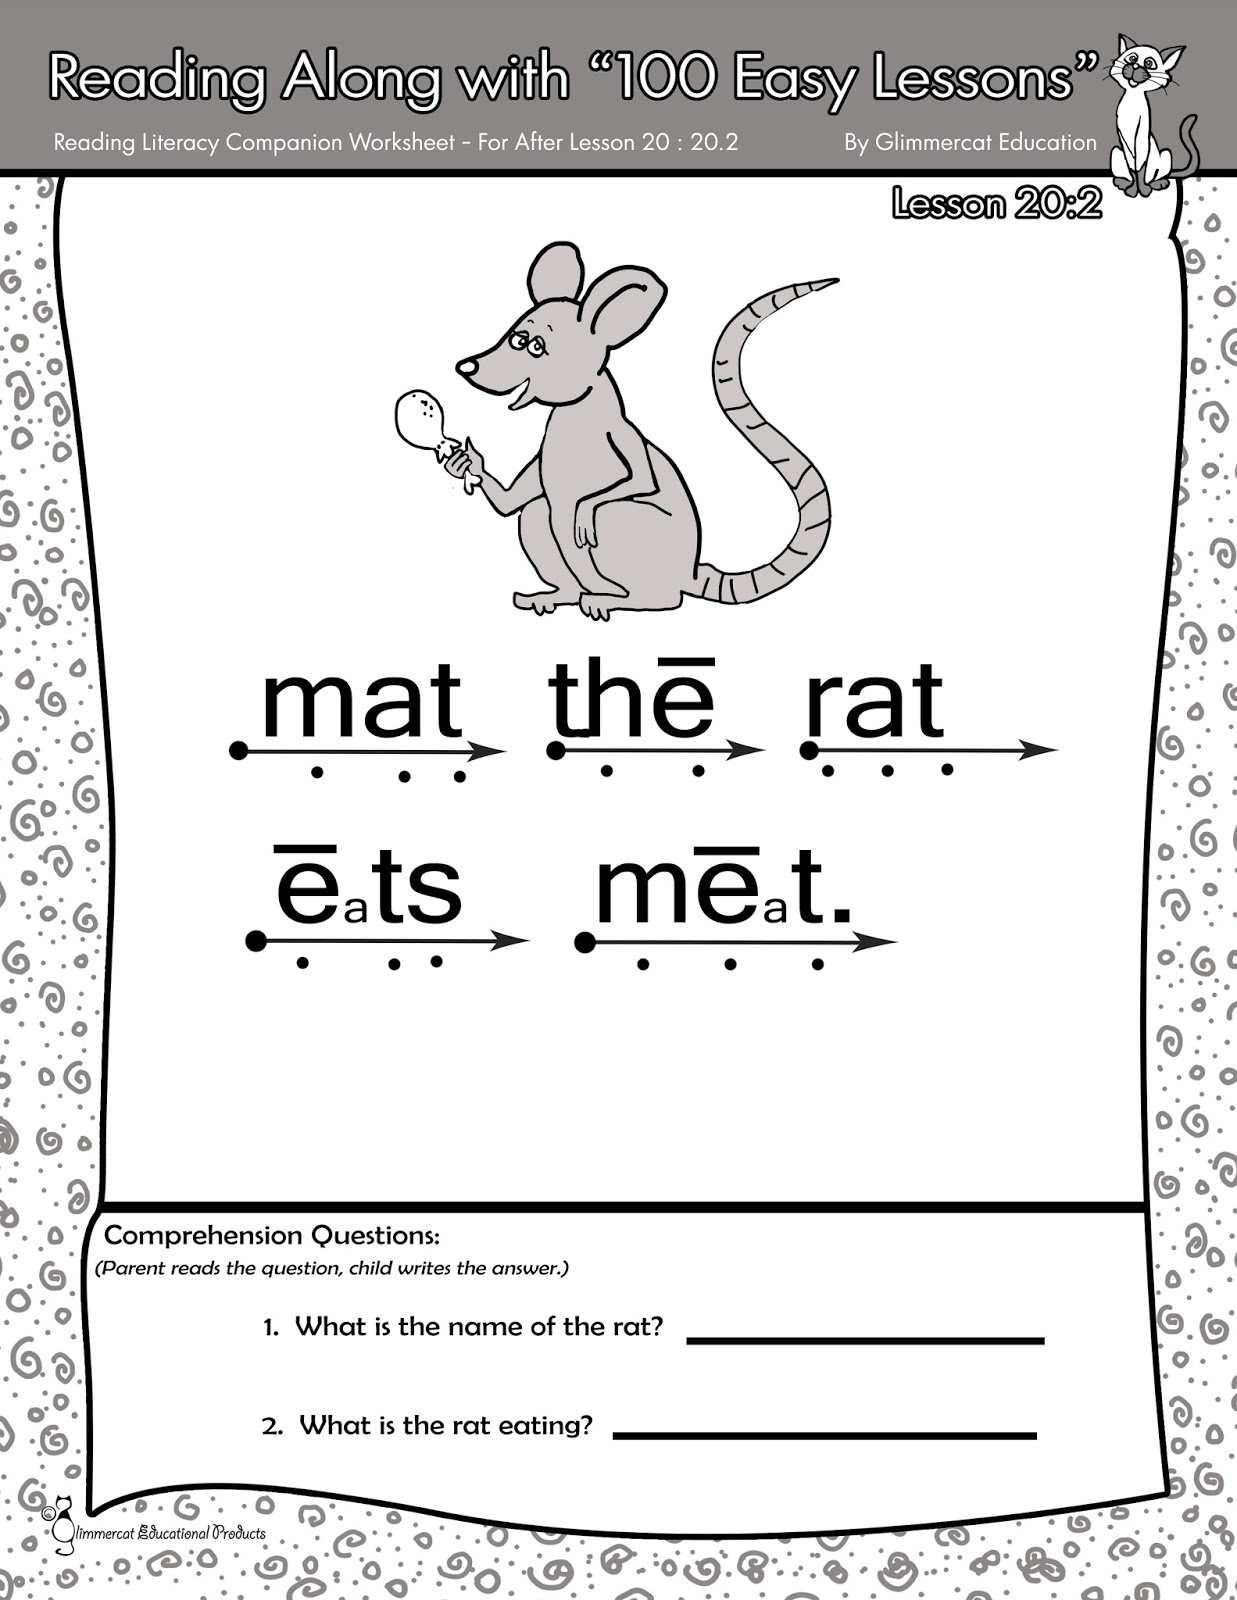 Worksheets Teach Your Child To Read In 100 Easy Lessons Worksheets glimmercat supplemental activities for teach your child to read if youre not exactly sure what looking at there that is a mat the rat craft from one of my freebie reading stories t